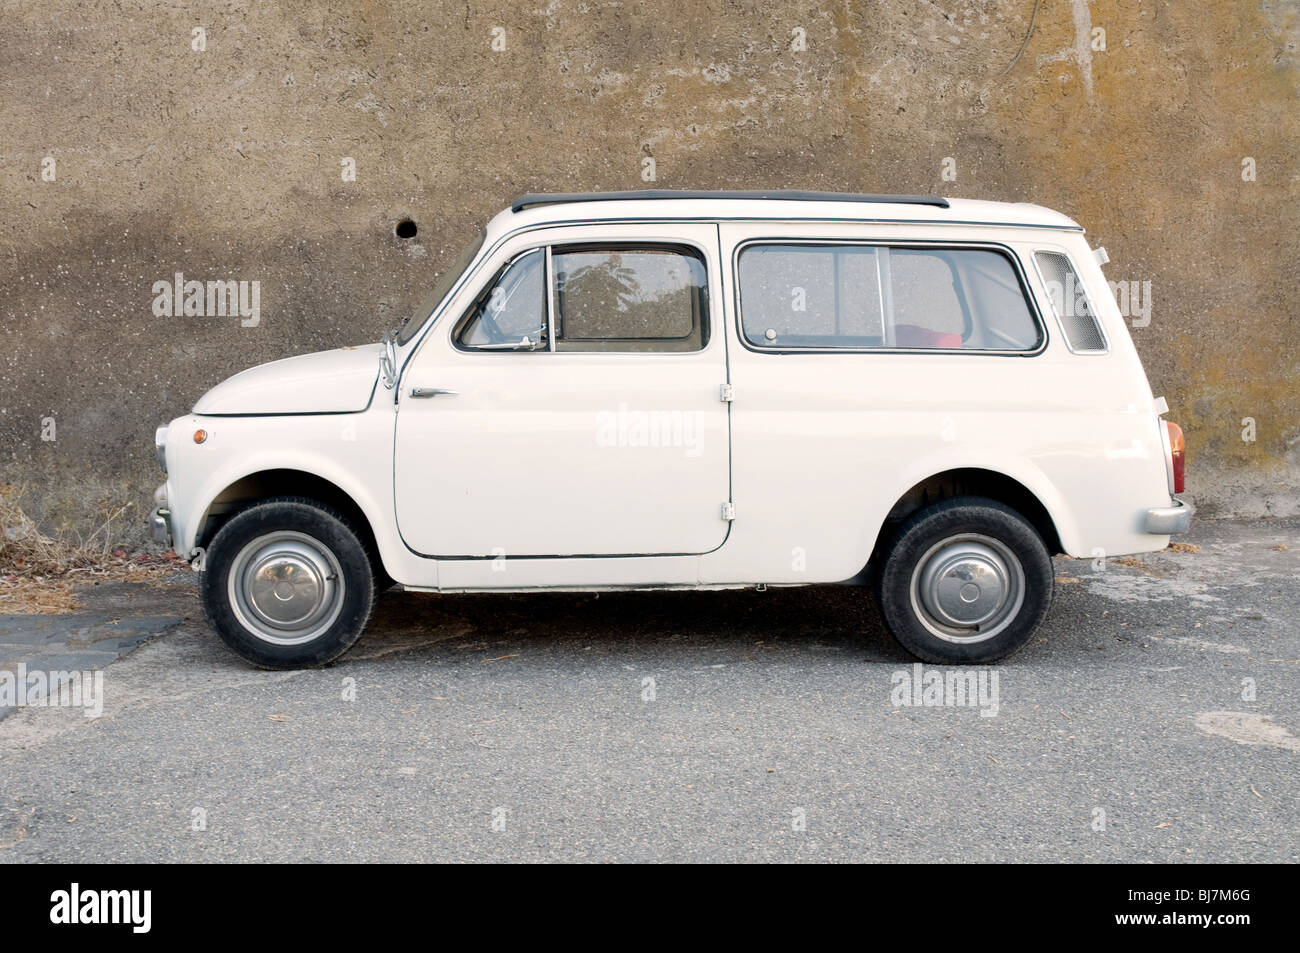 An old Fiat car parked on a side street in the village of Malfa, on the Aeolian Island of Salina, Italy. - Stock Image